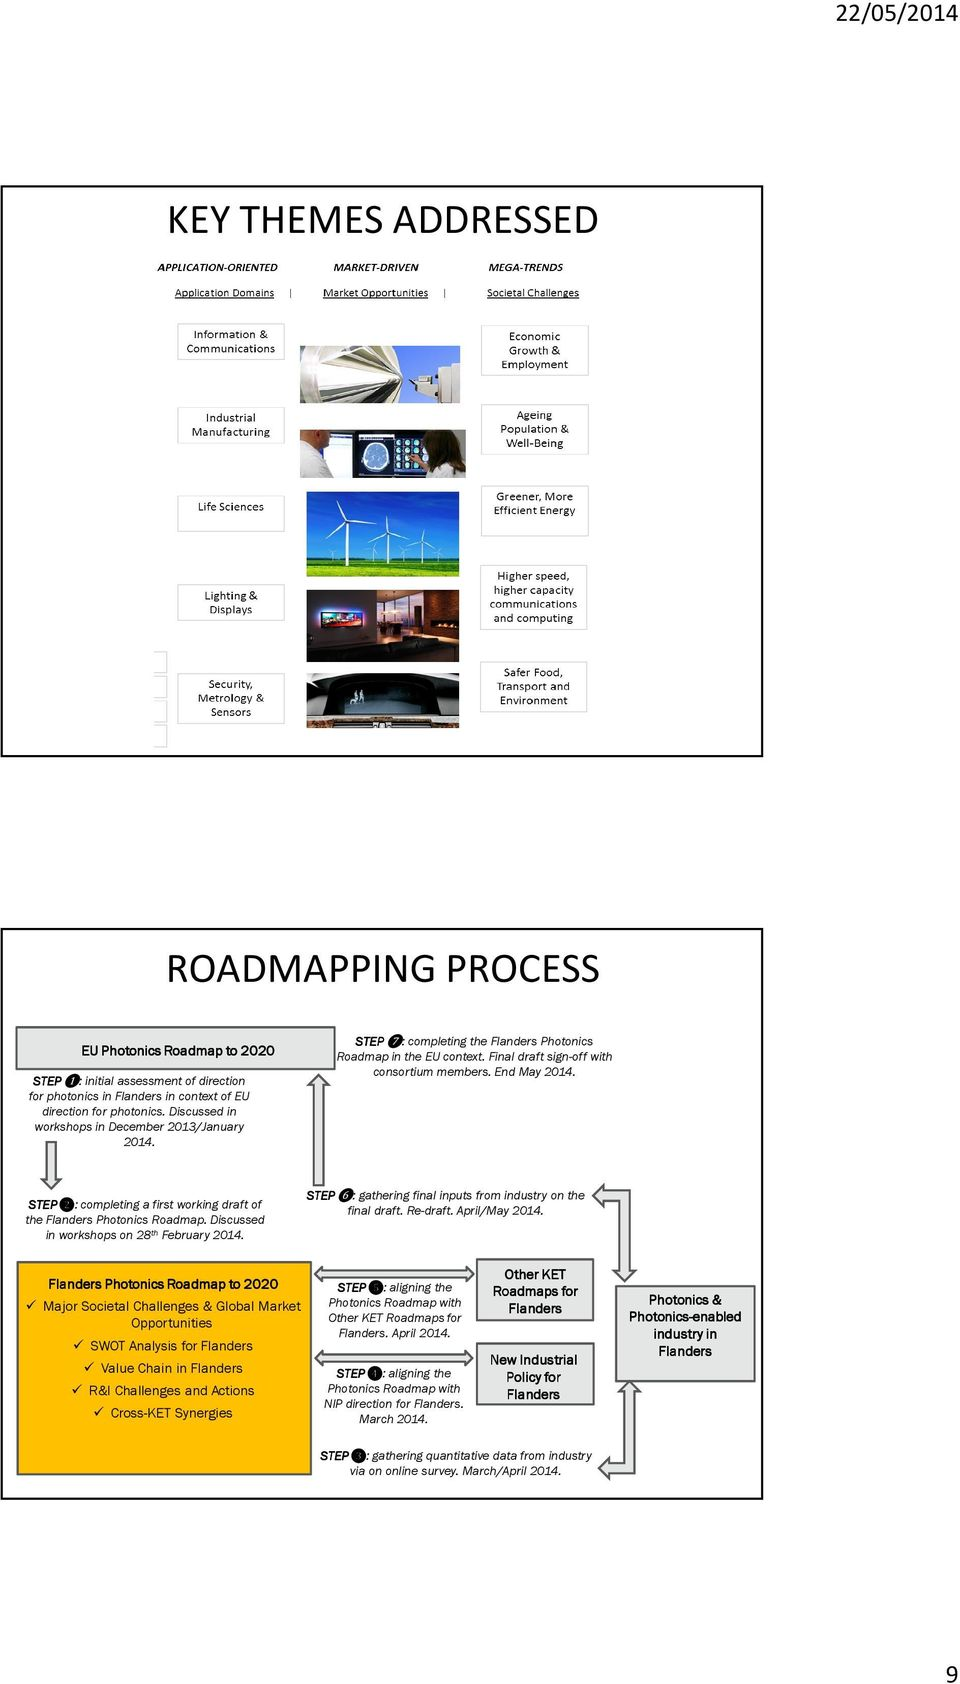 STEP❷: completing a first working draft of the Flanders Photonics Roadmap. Discussed in workshops on 28 th February 2014. STEP❻: gathering final inputs from industry on the final draft. Re-draft.